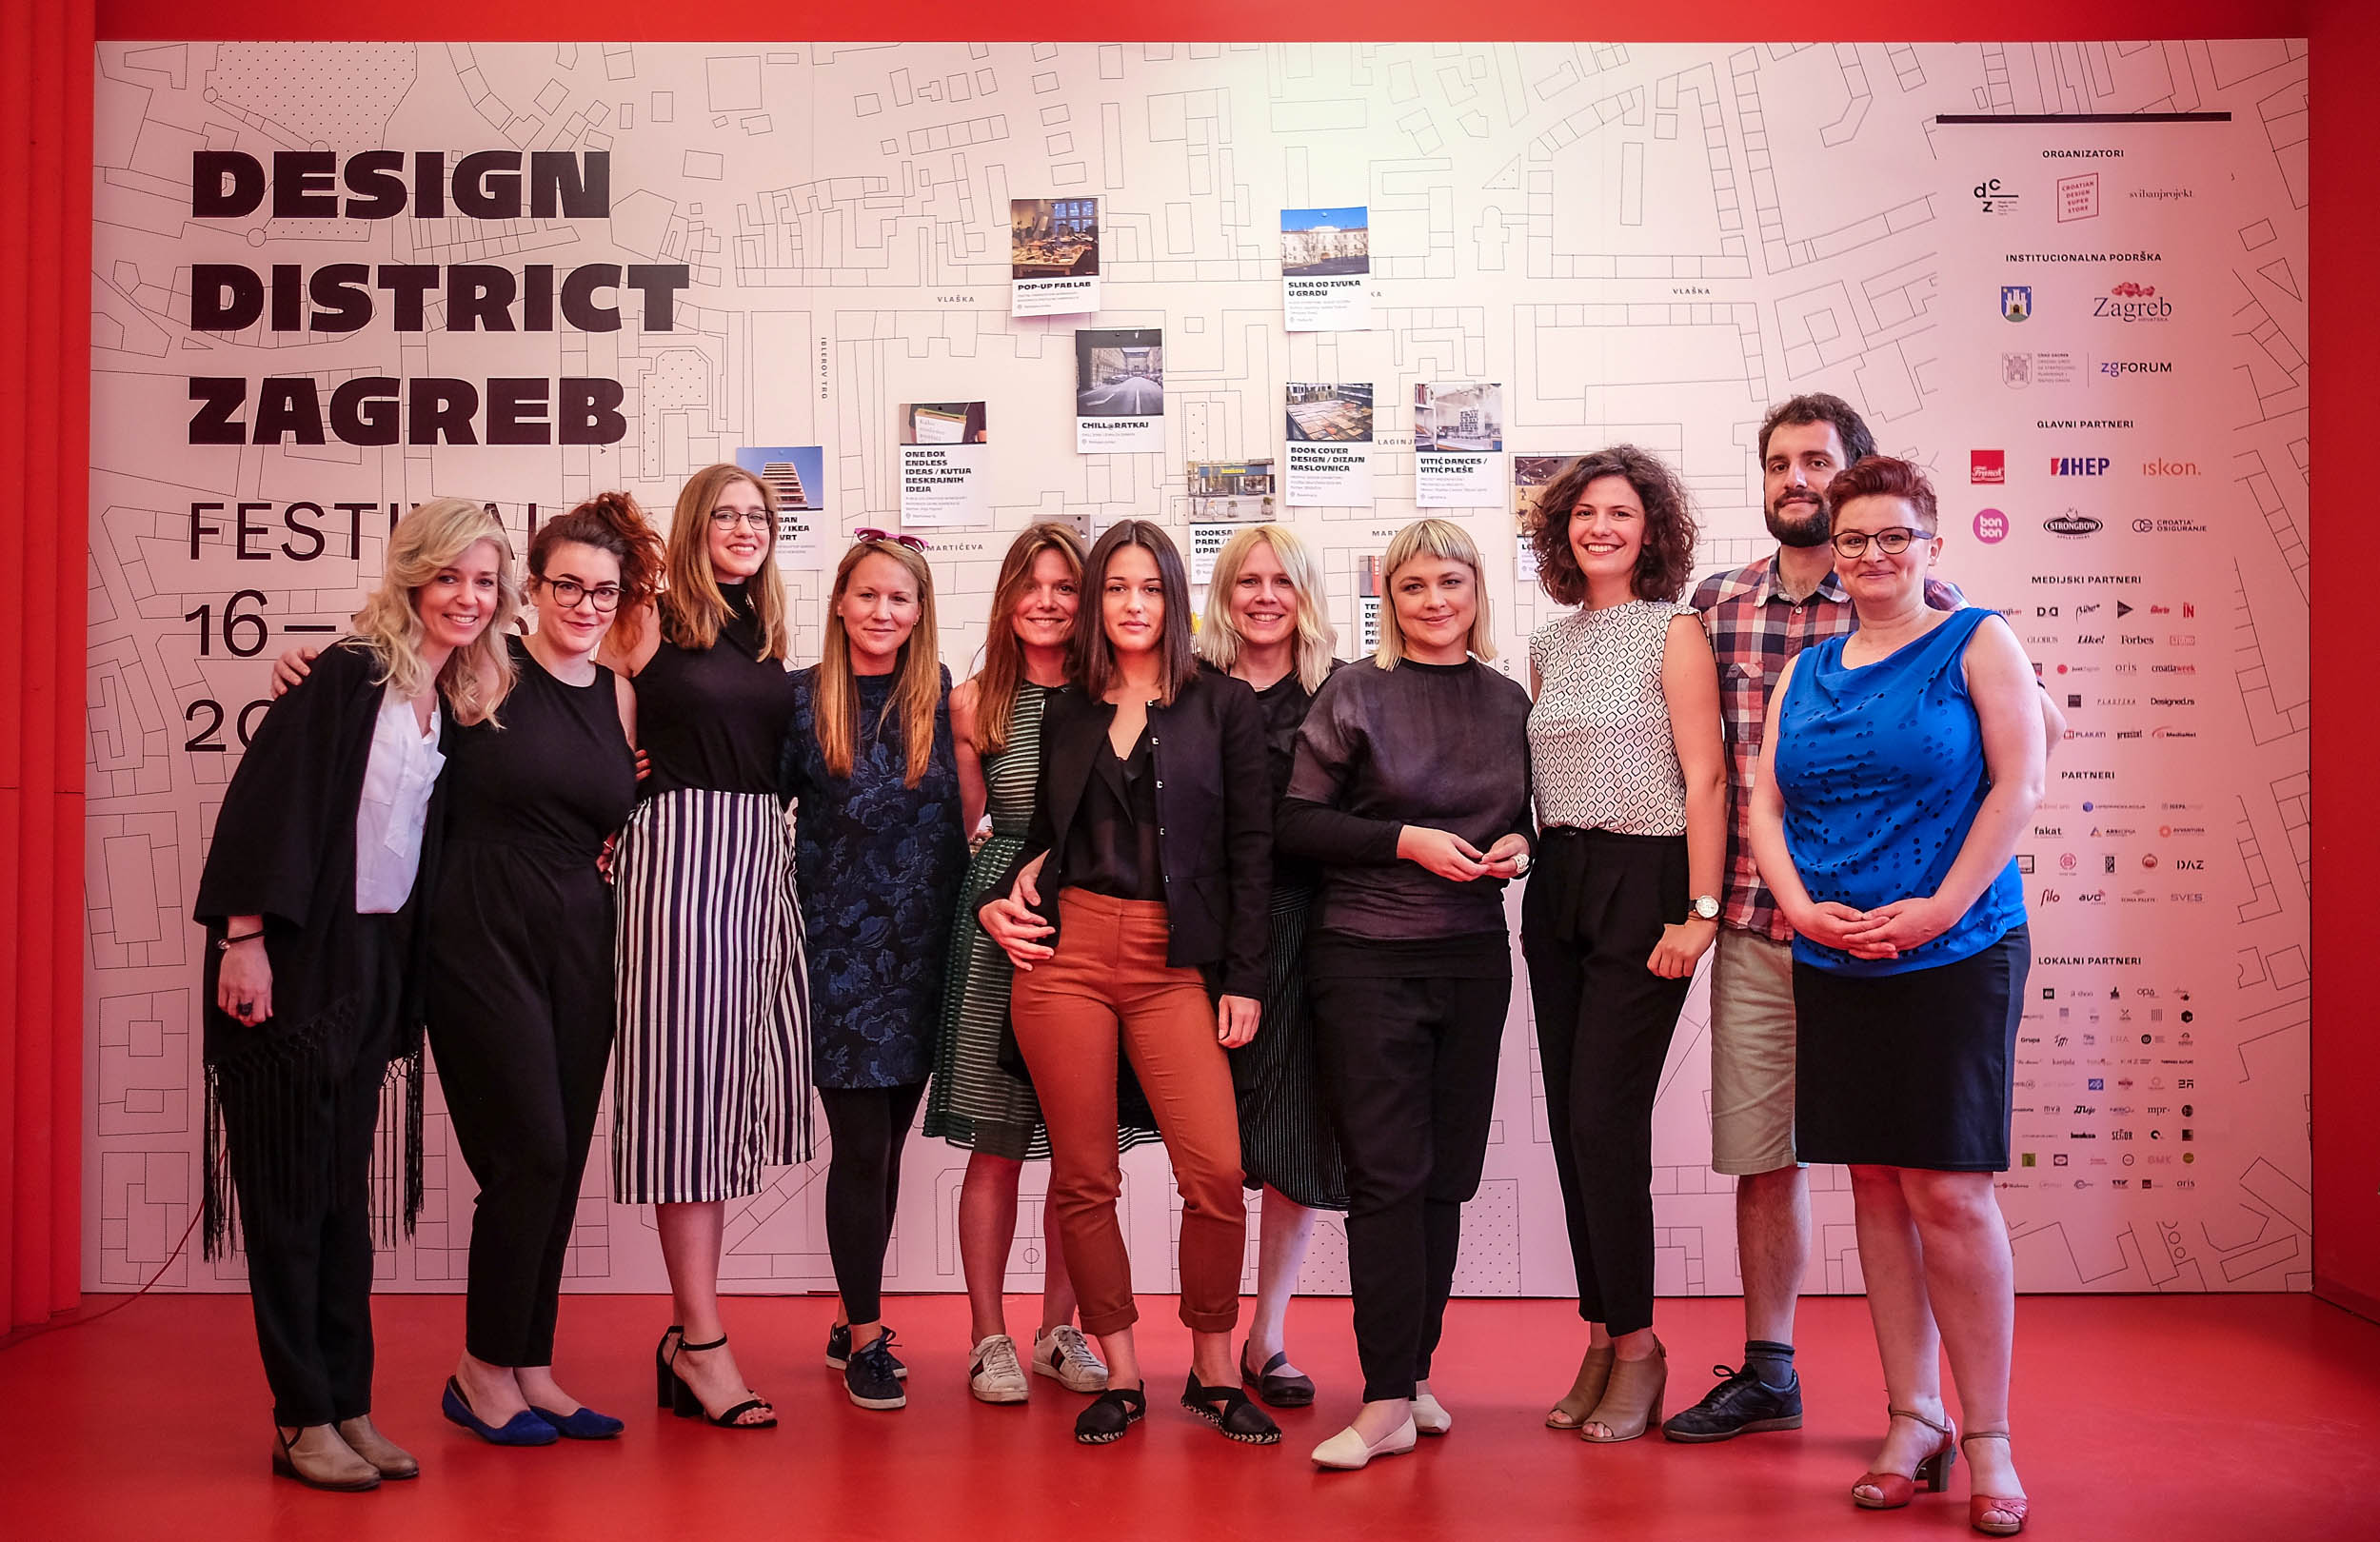 Design District Zagreb Starts on June 16th